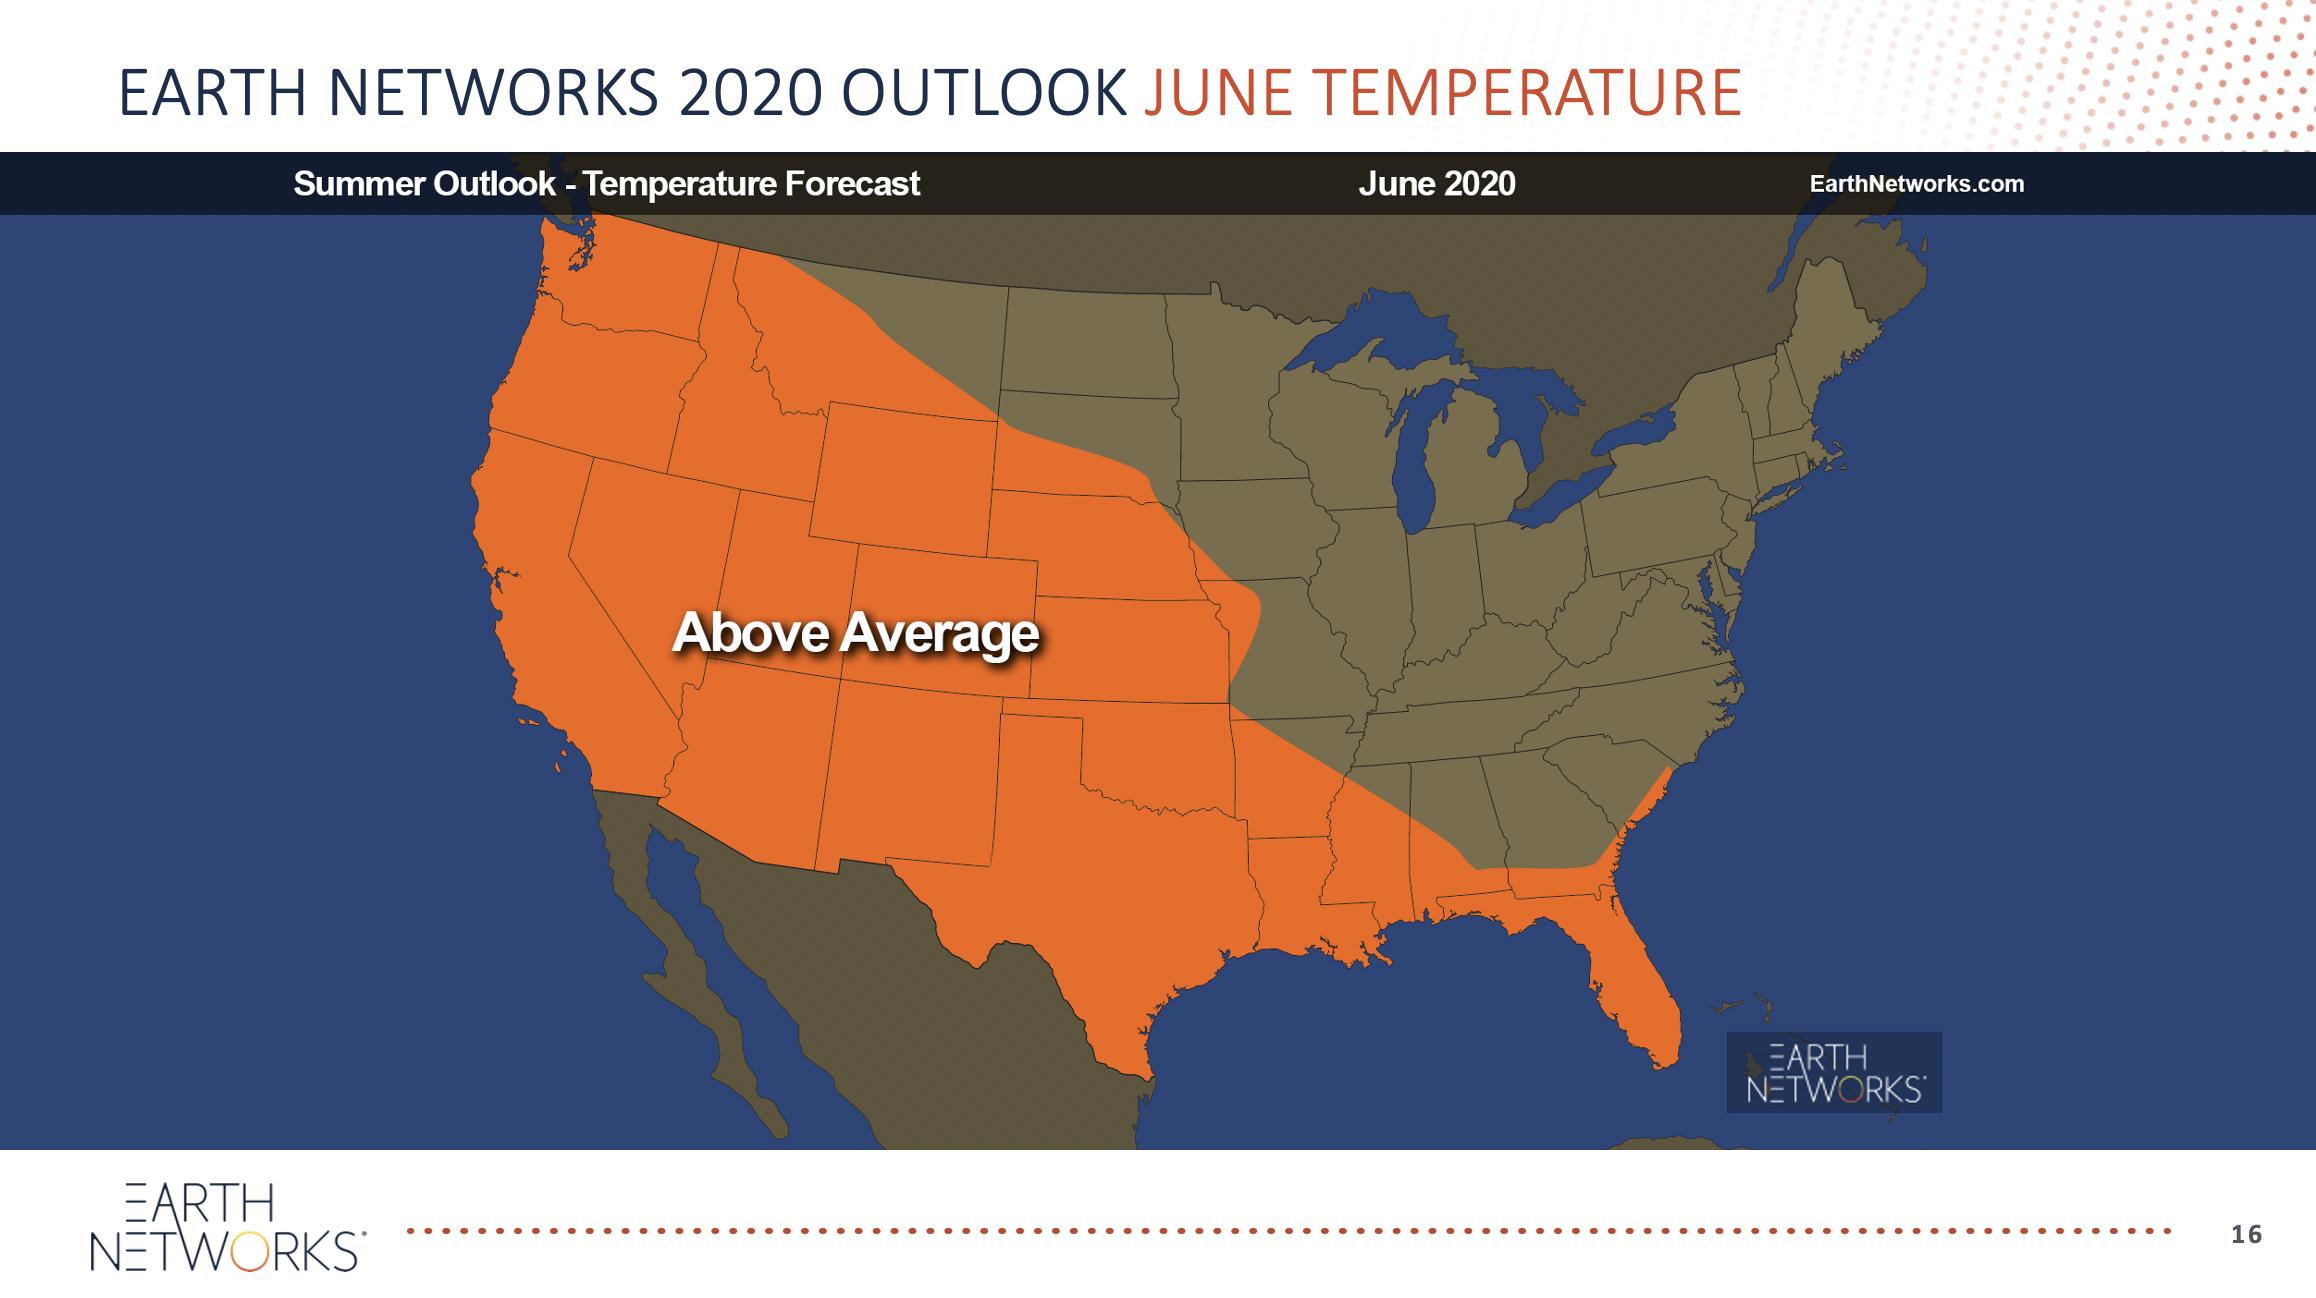 Above average temperatures for the 2020 summer outlook during the month of June